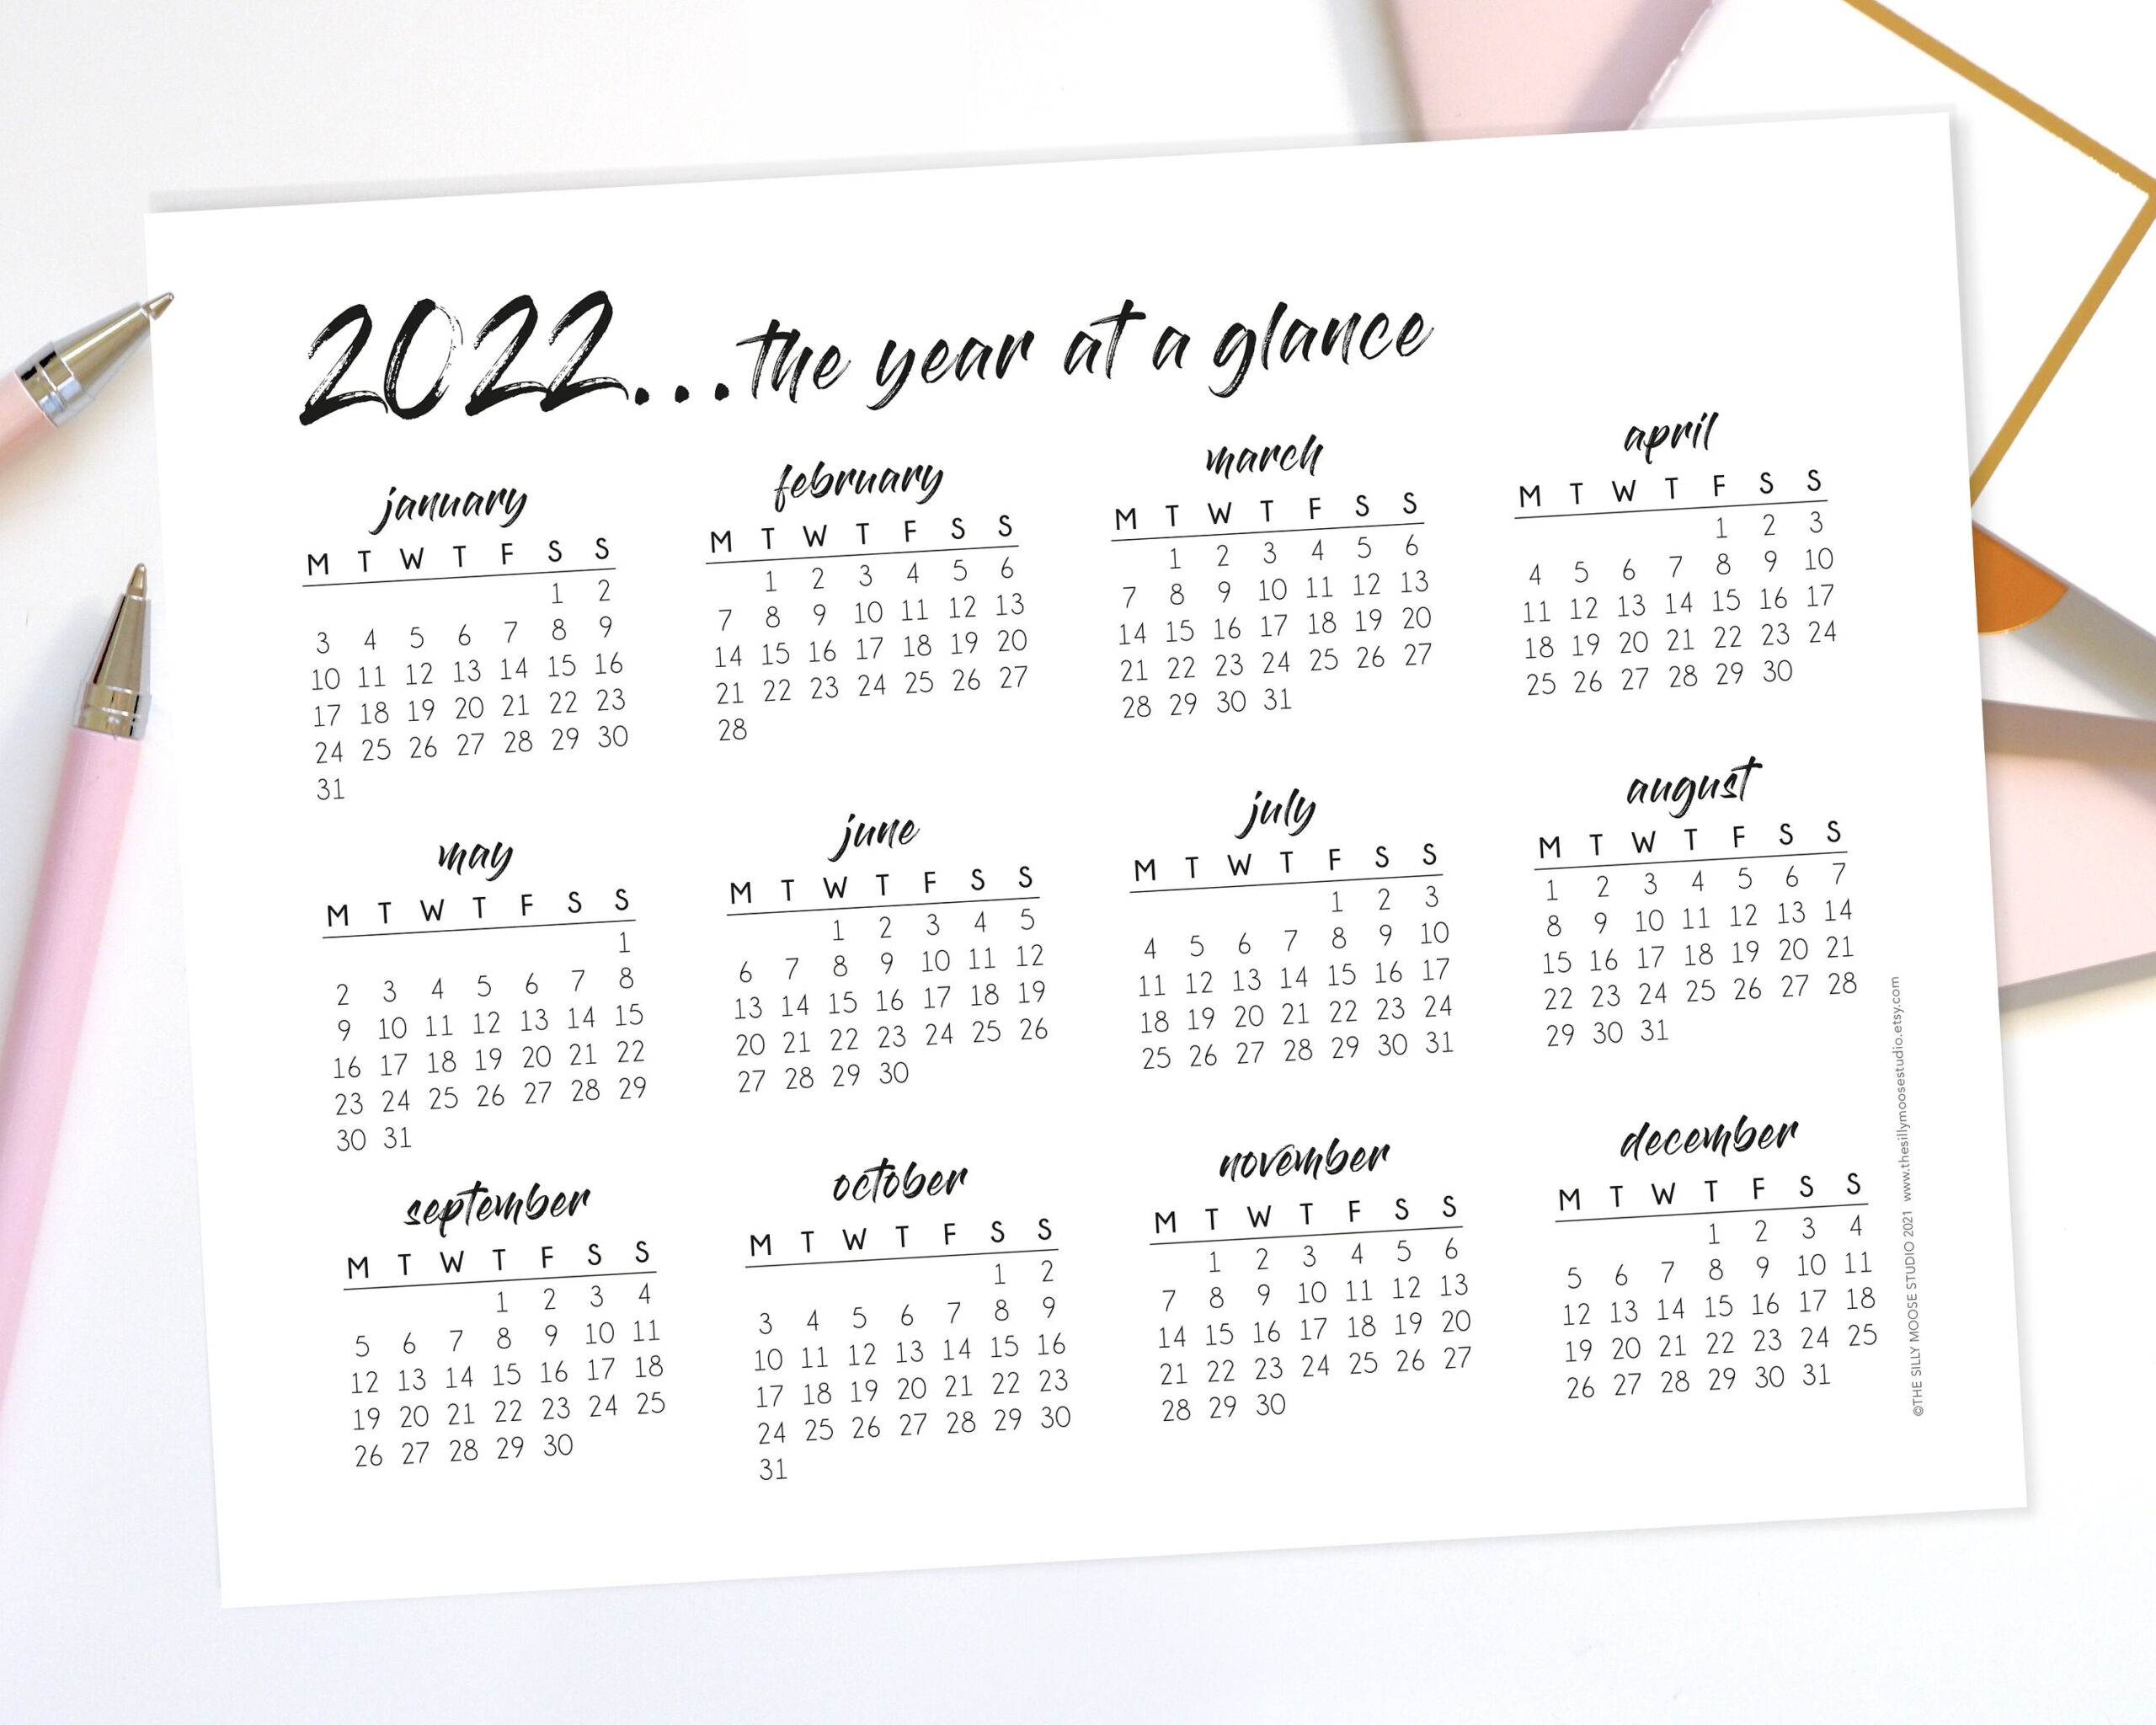 2022 Yearly Calendar Printable Monday Start Landscape Year intended for What Date Does Gcu Start 2022